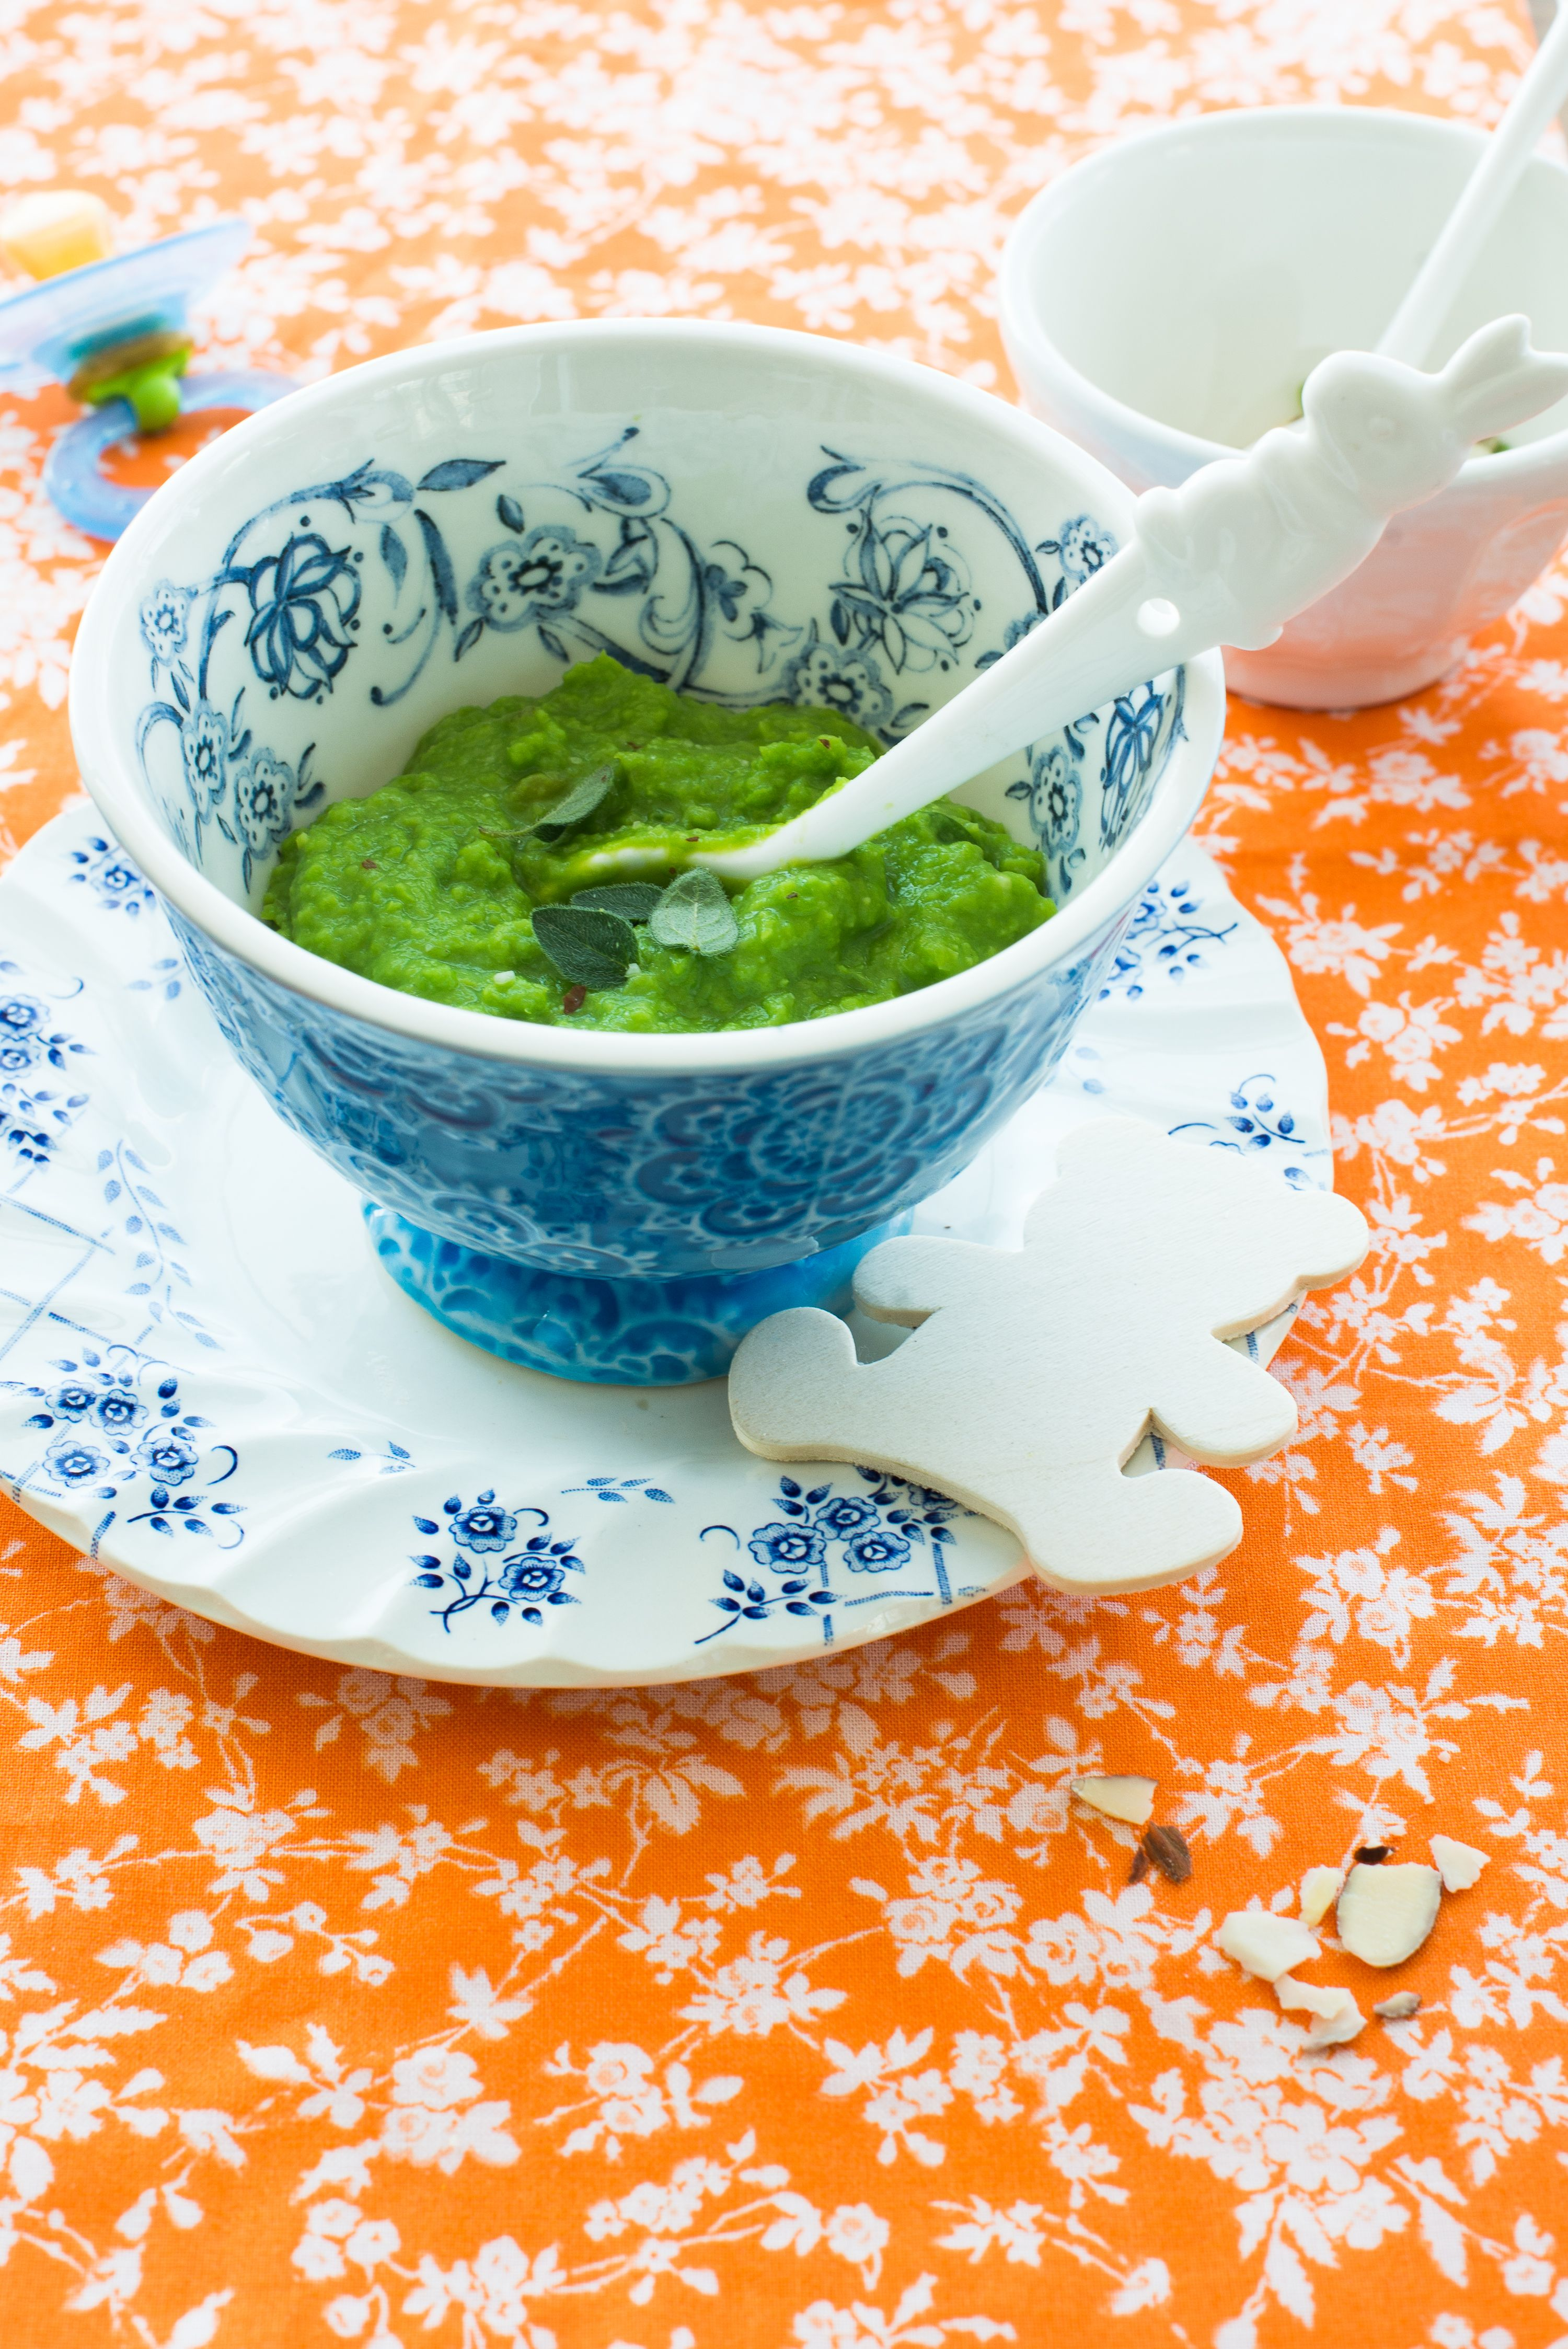 #food photography #homemade fresh sweet pea baby puree #recettes pour bébé #baby purees ideas #cooking inspiration for little ones |Au Petit Goût